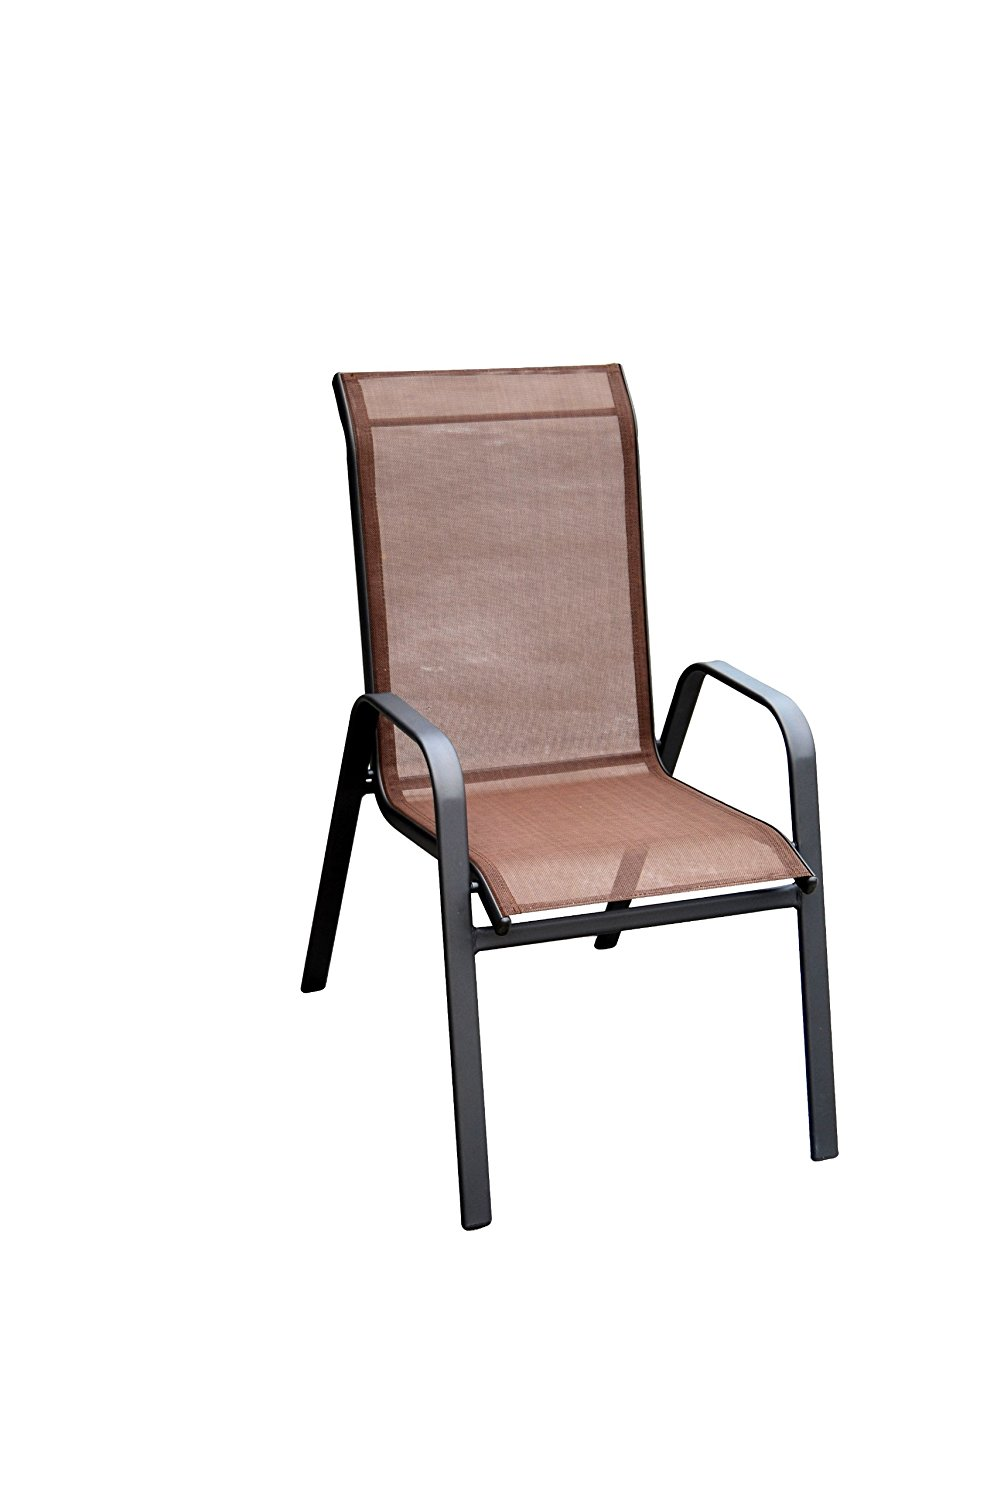 Slingback Patio Chairs Reviews And Information Outsidemodern